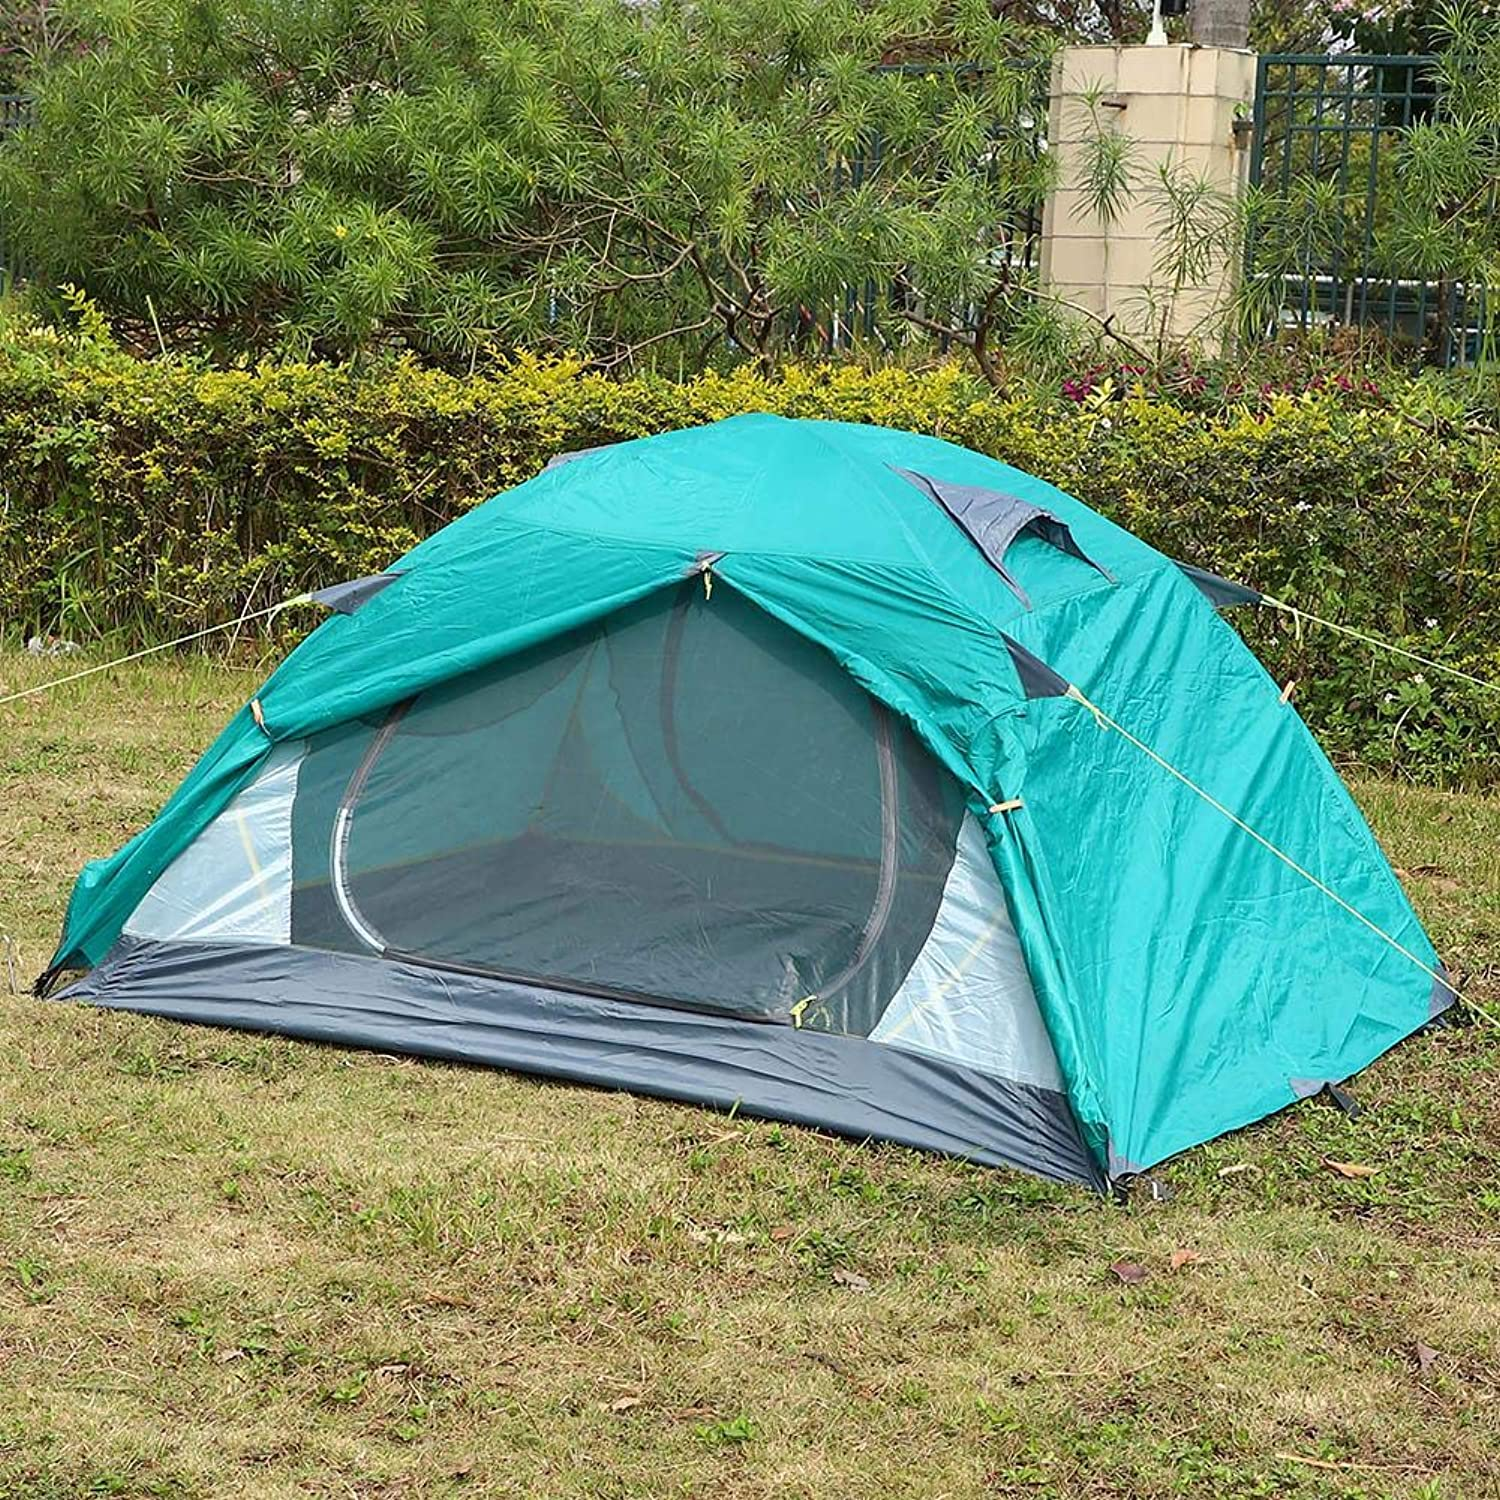 Outdoor Tents Professional Waterproof Aluminum Pole 2 Person Tent for Family, Outdoor, Hiking and Mountaineering